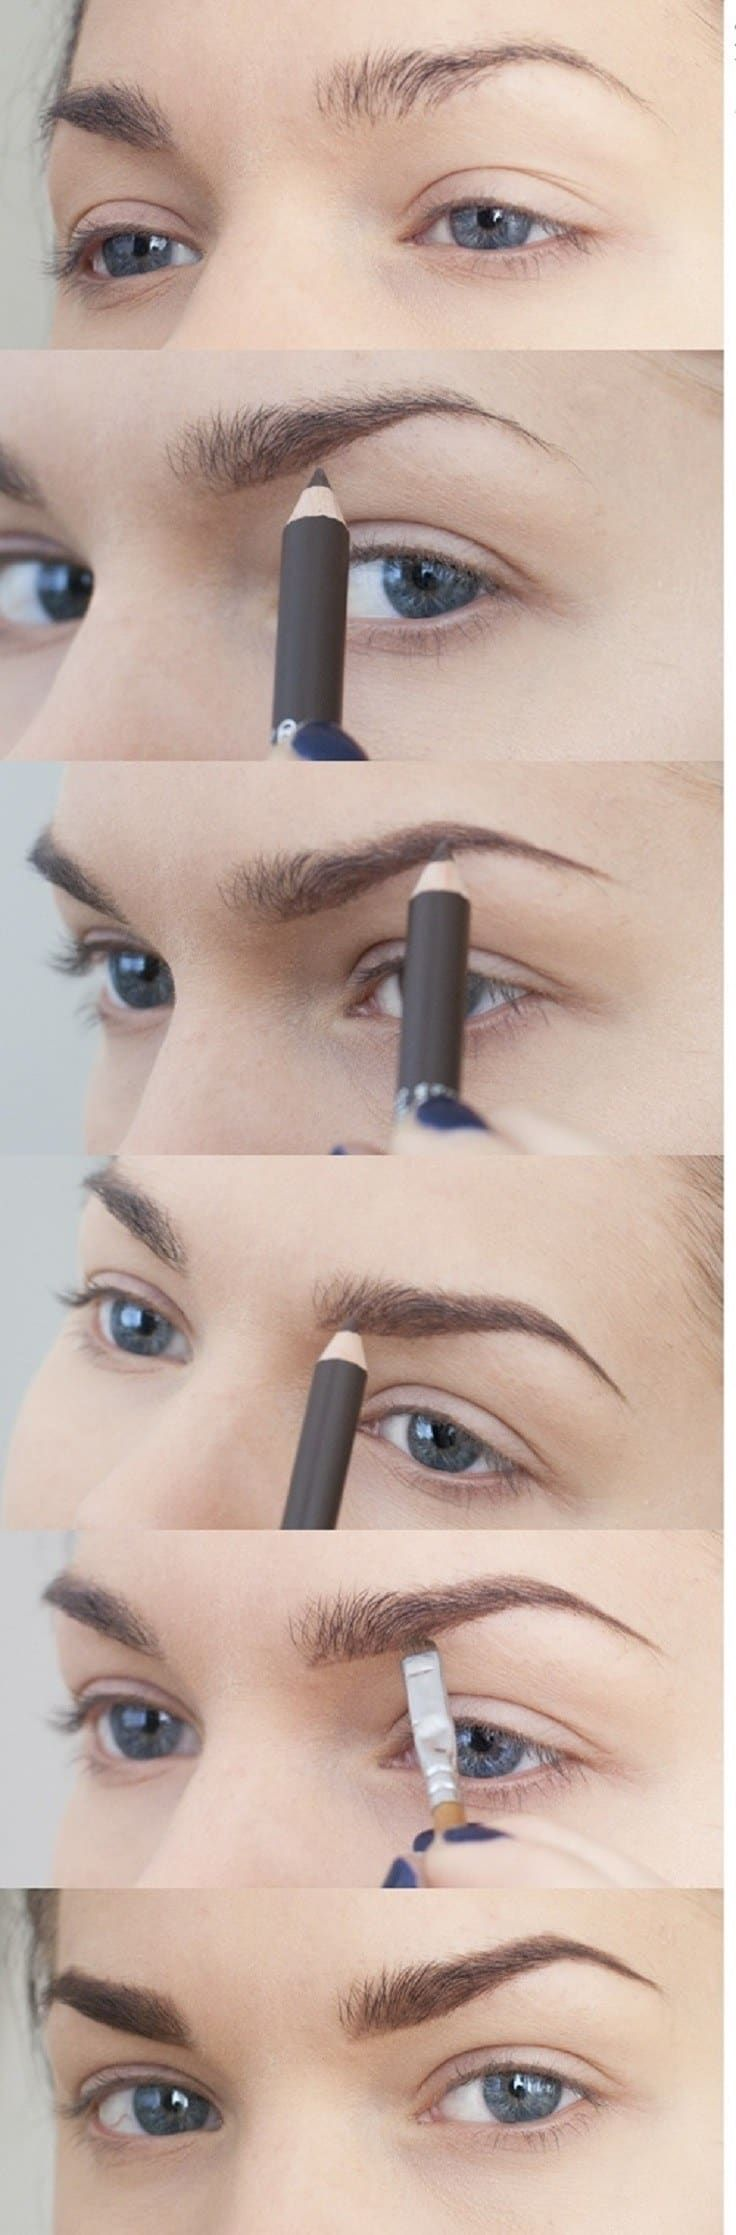 25+ best ideas about Natural eyebrows on Pinterest | Eyebrow, Brow ...